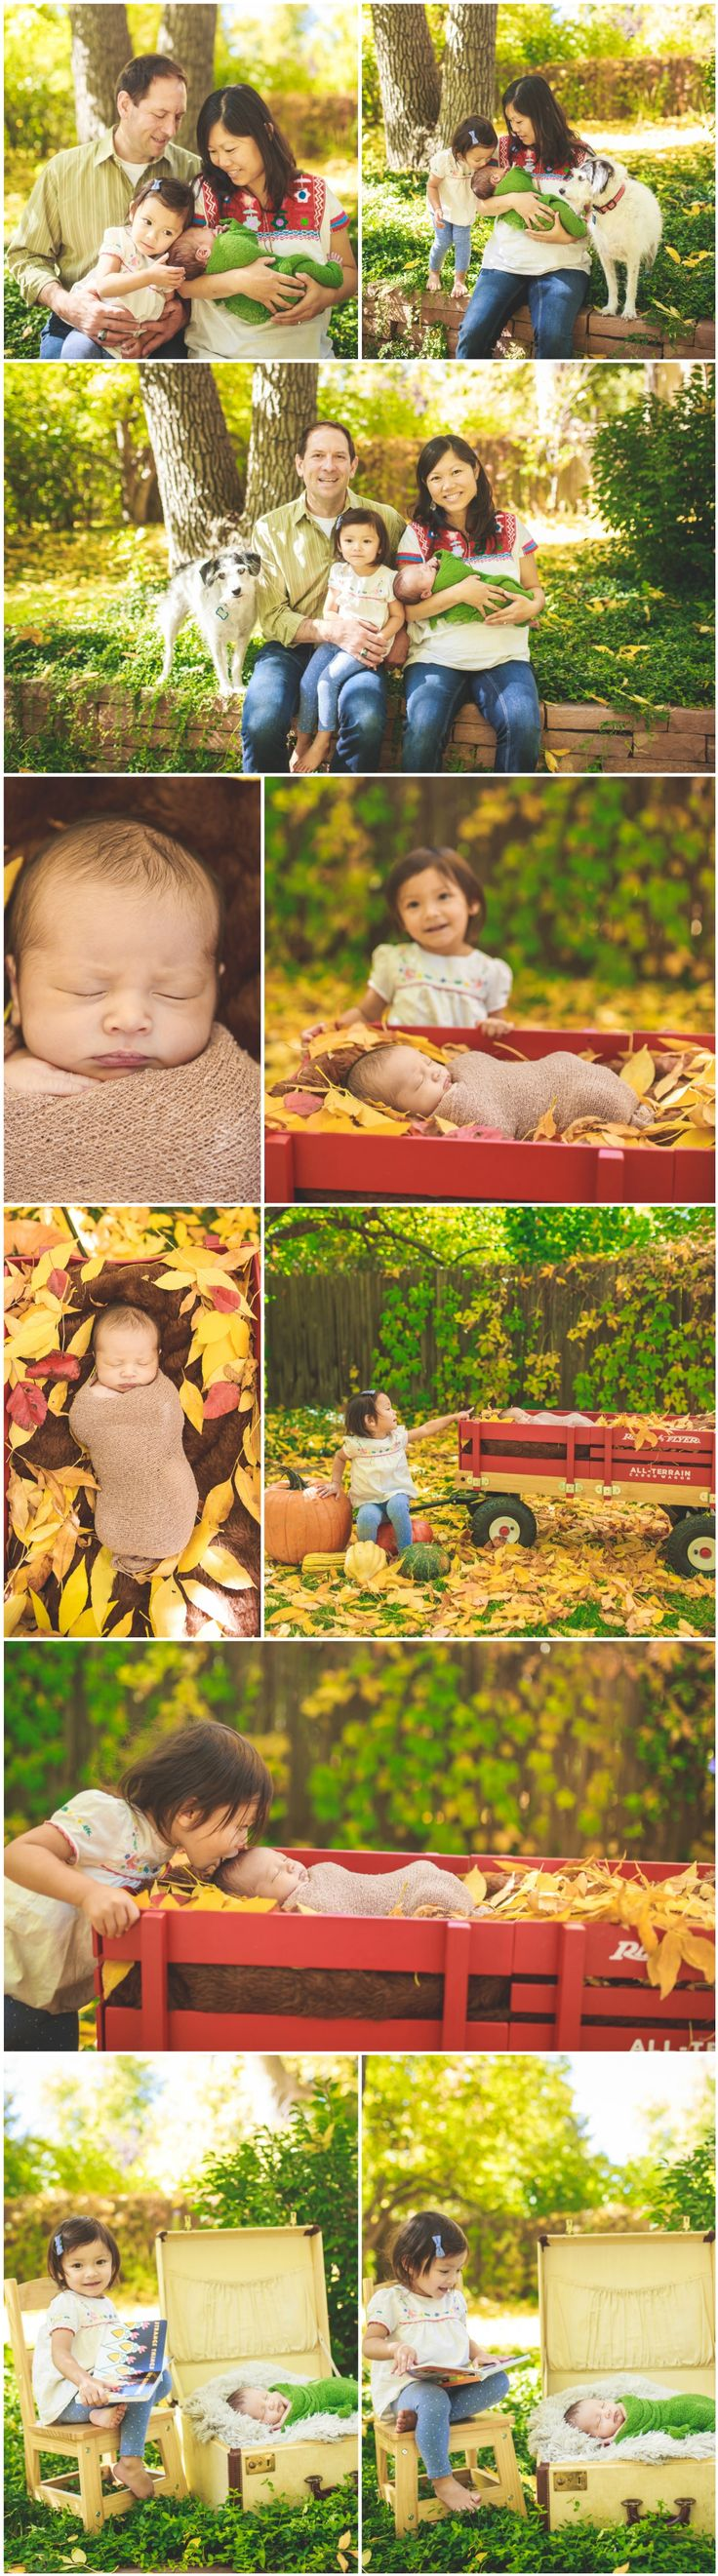 Newborn Photography Ideas and Inspiration   Newborn Poses   Denver Newborn Photographers   Newborn and Family Portraits